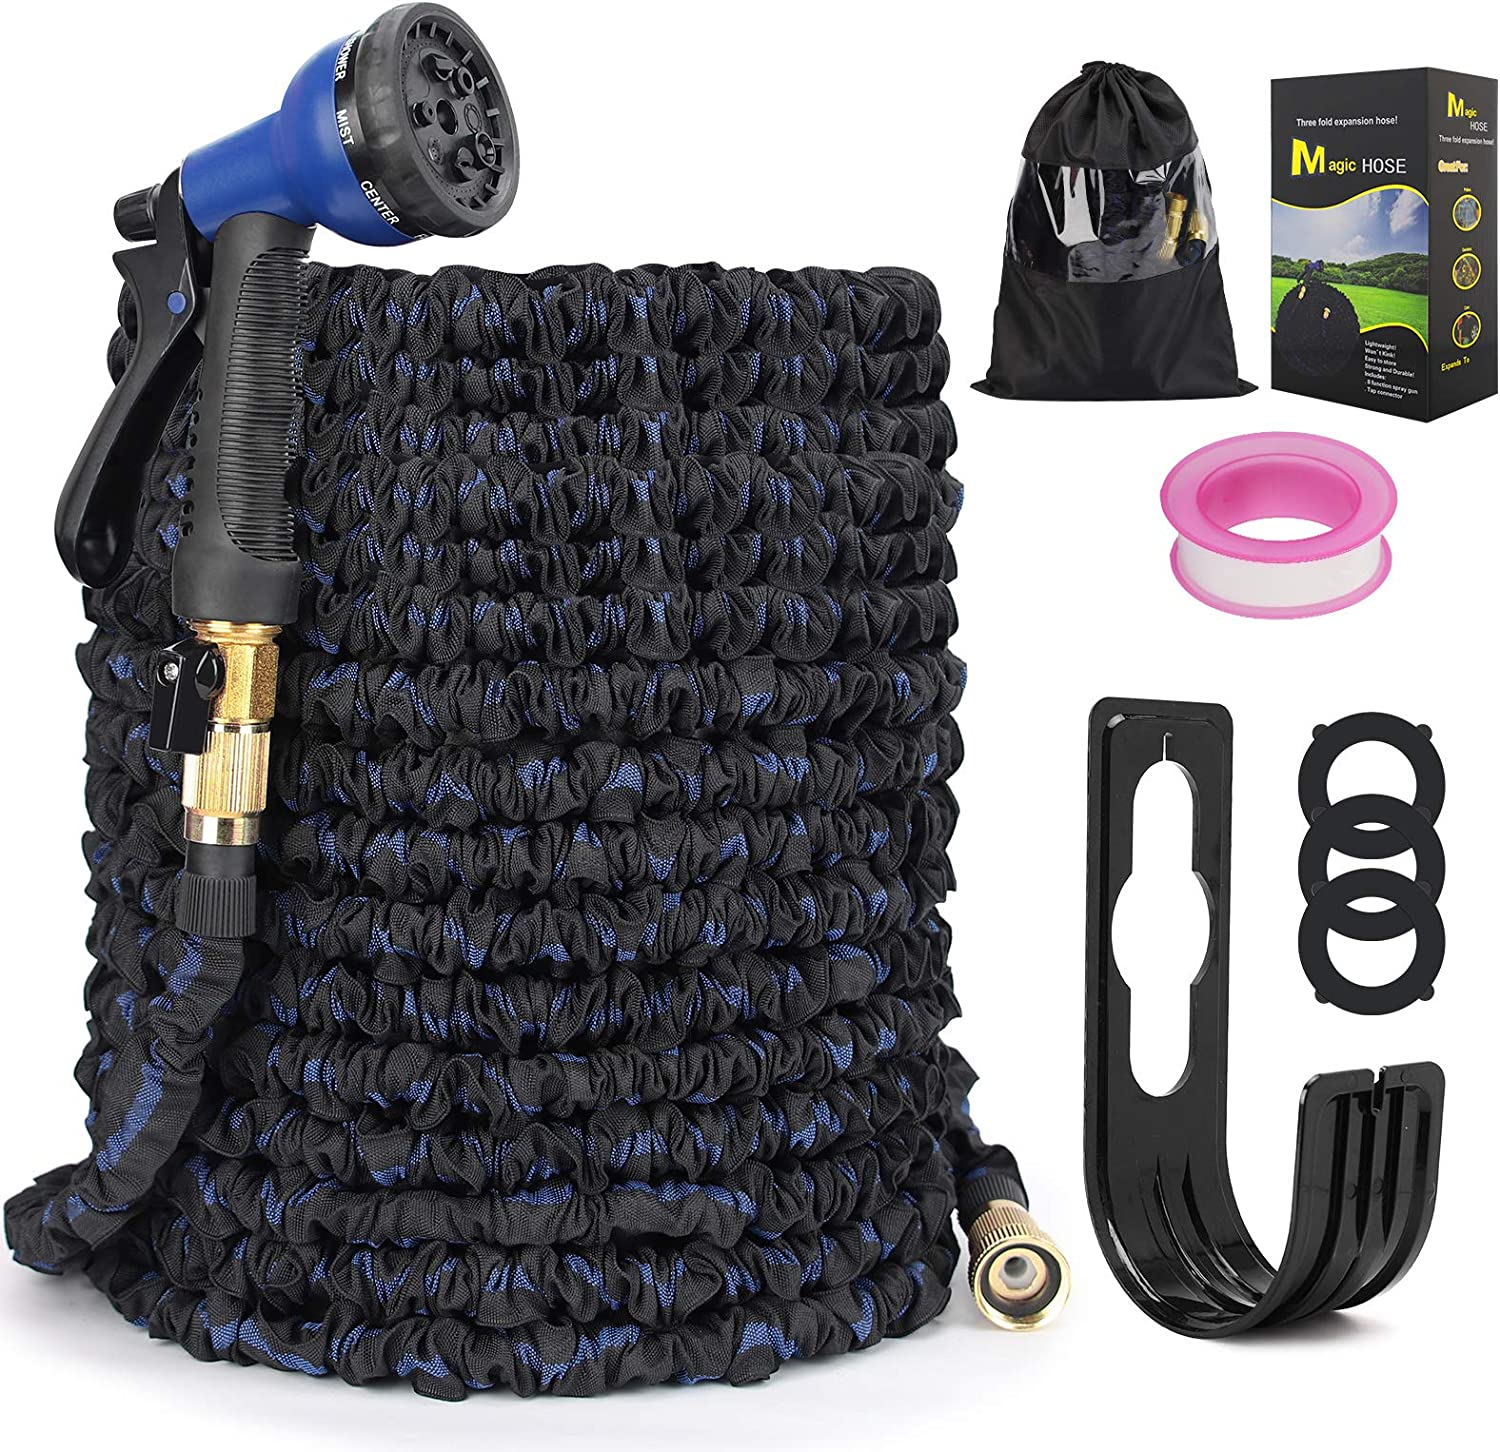 Expandable Garden Hose, Kink Free Garden Hose 50 ft,Latex Core Flexible Anti-Leakage Water Hose with 8 Function Nozzle 、Brass Connector、Pocket, Easy Storage for Outdoor Lawn Car Watering (Black&Blue)